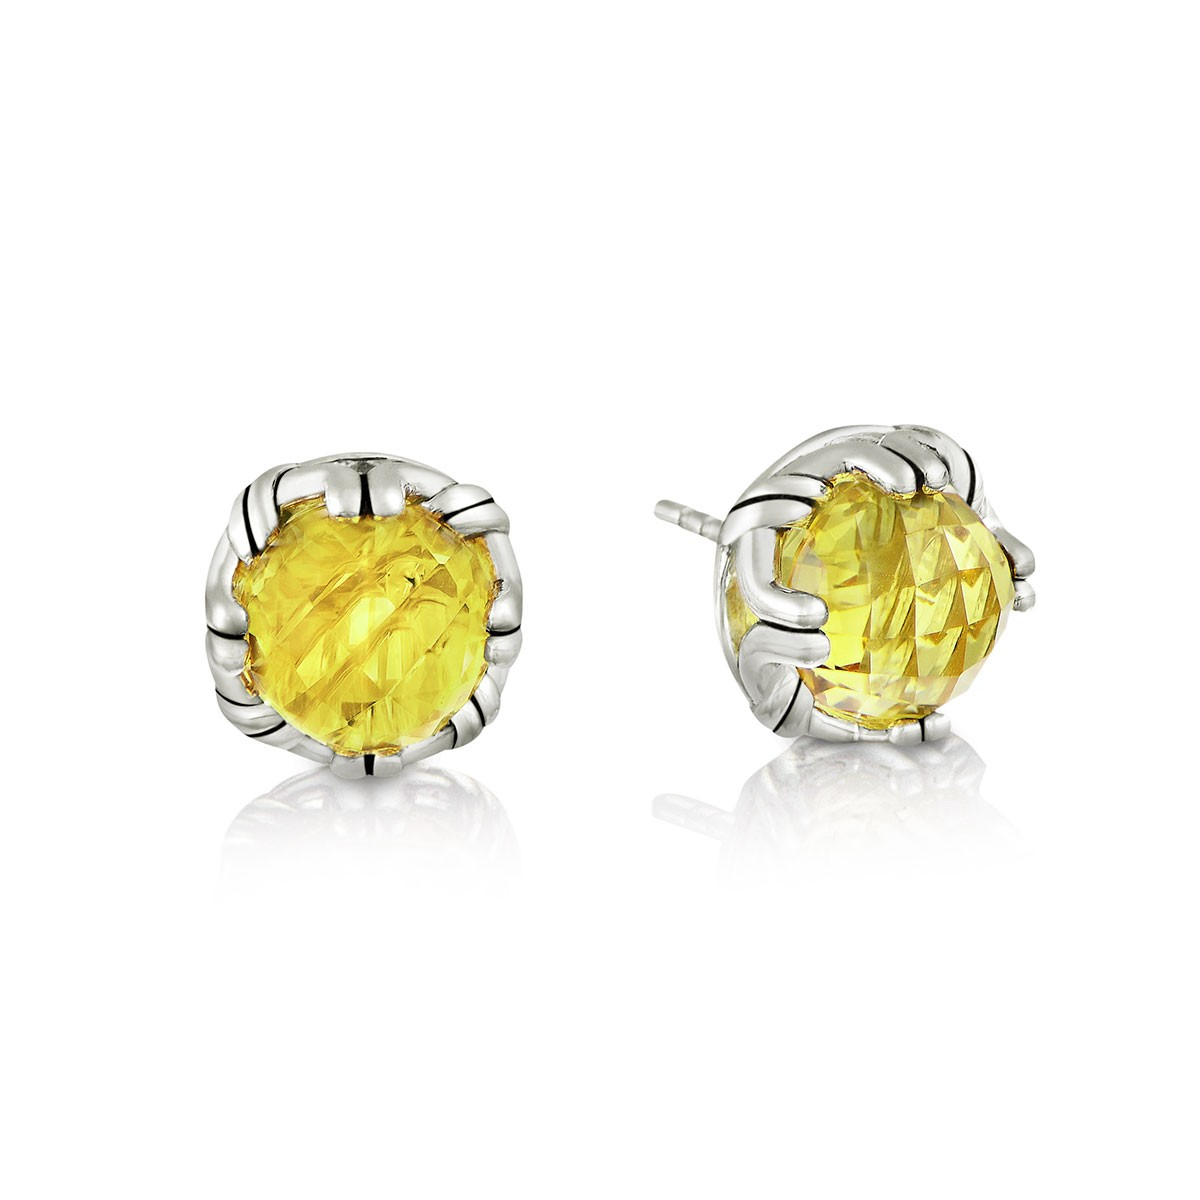 earrings stud citrine giftsden yellow cube square gucci earring g